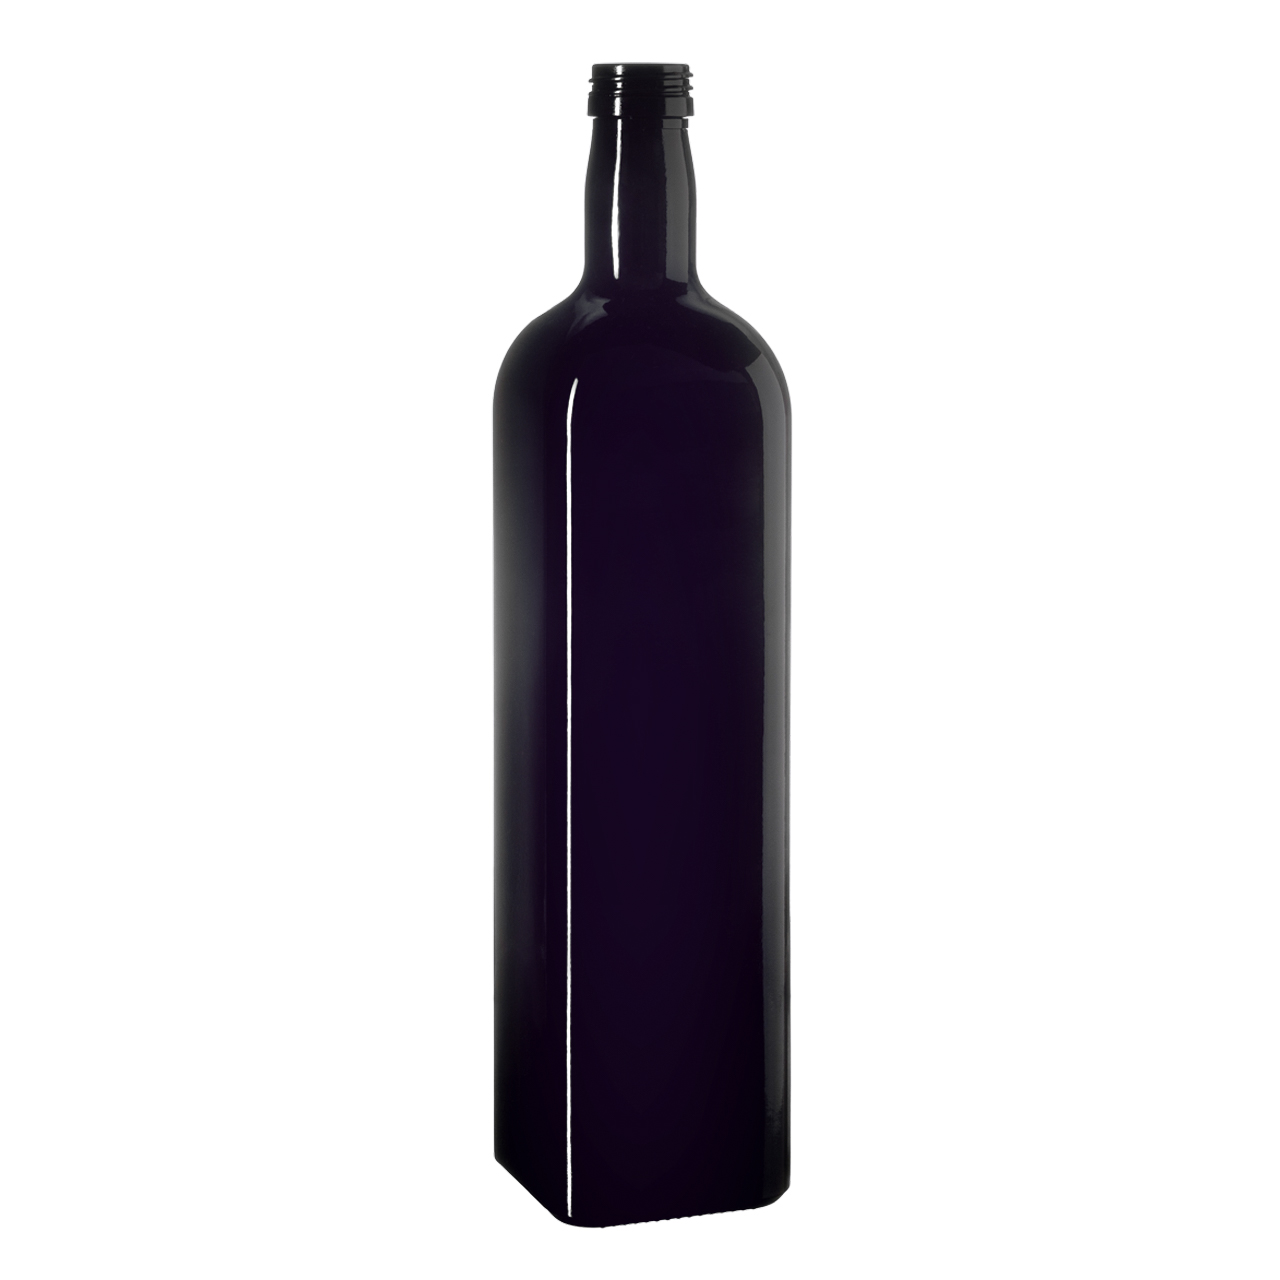 Oil bottle Castor 1000 ml, Miron, 31.5 STD thread (square)